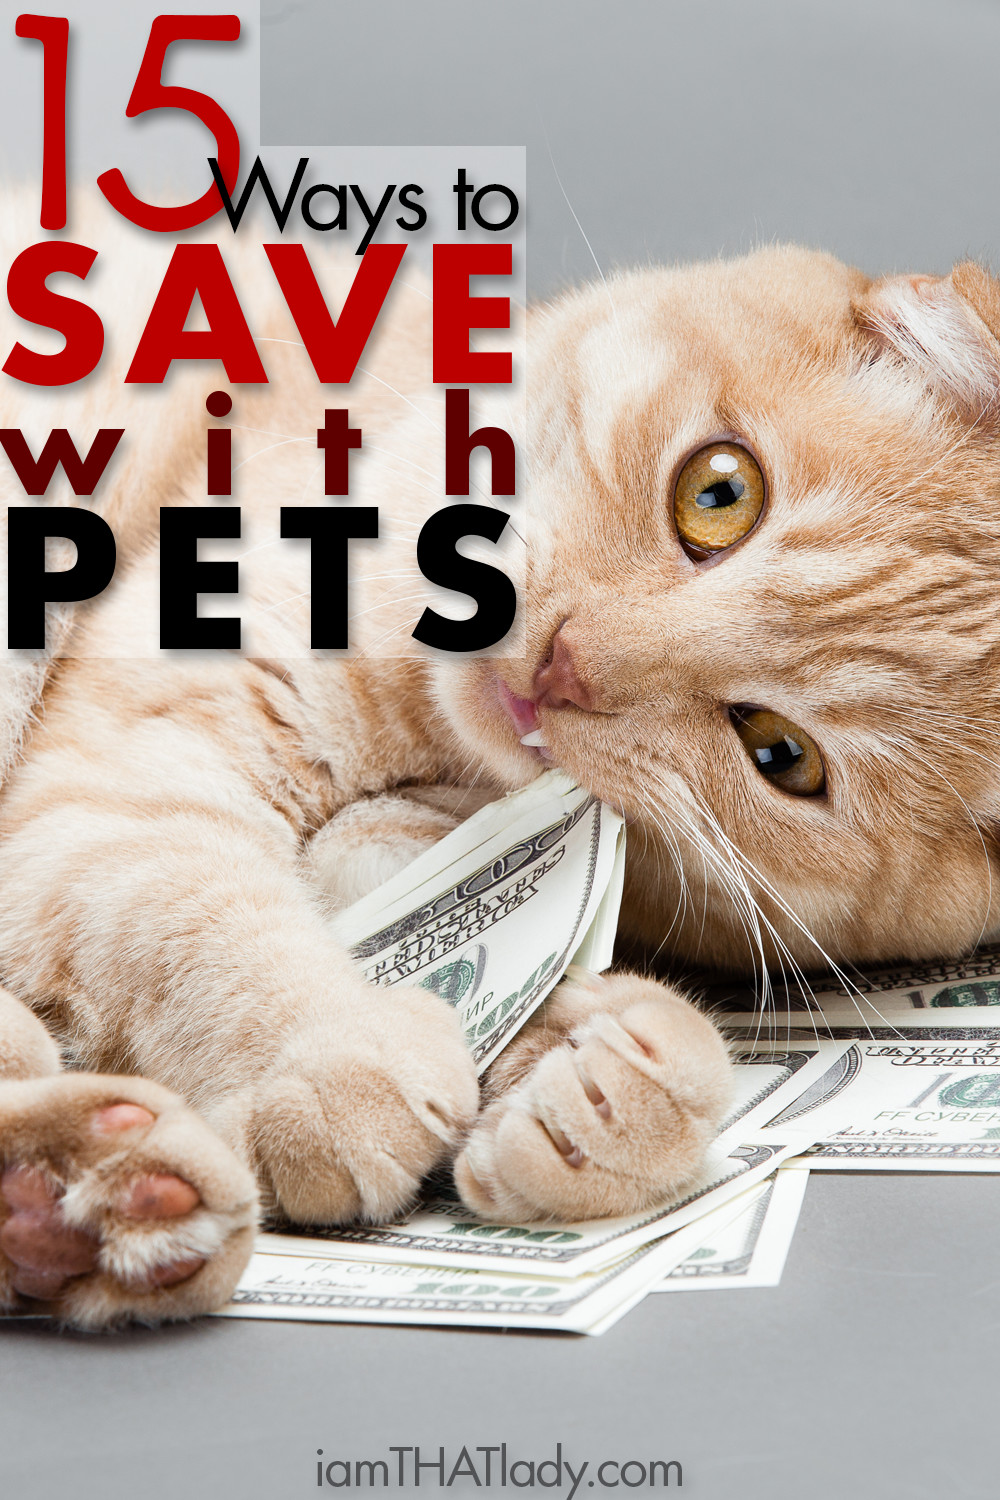 Pets are EXPENSIVE! Here is the complete guide to save on pets!